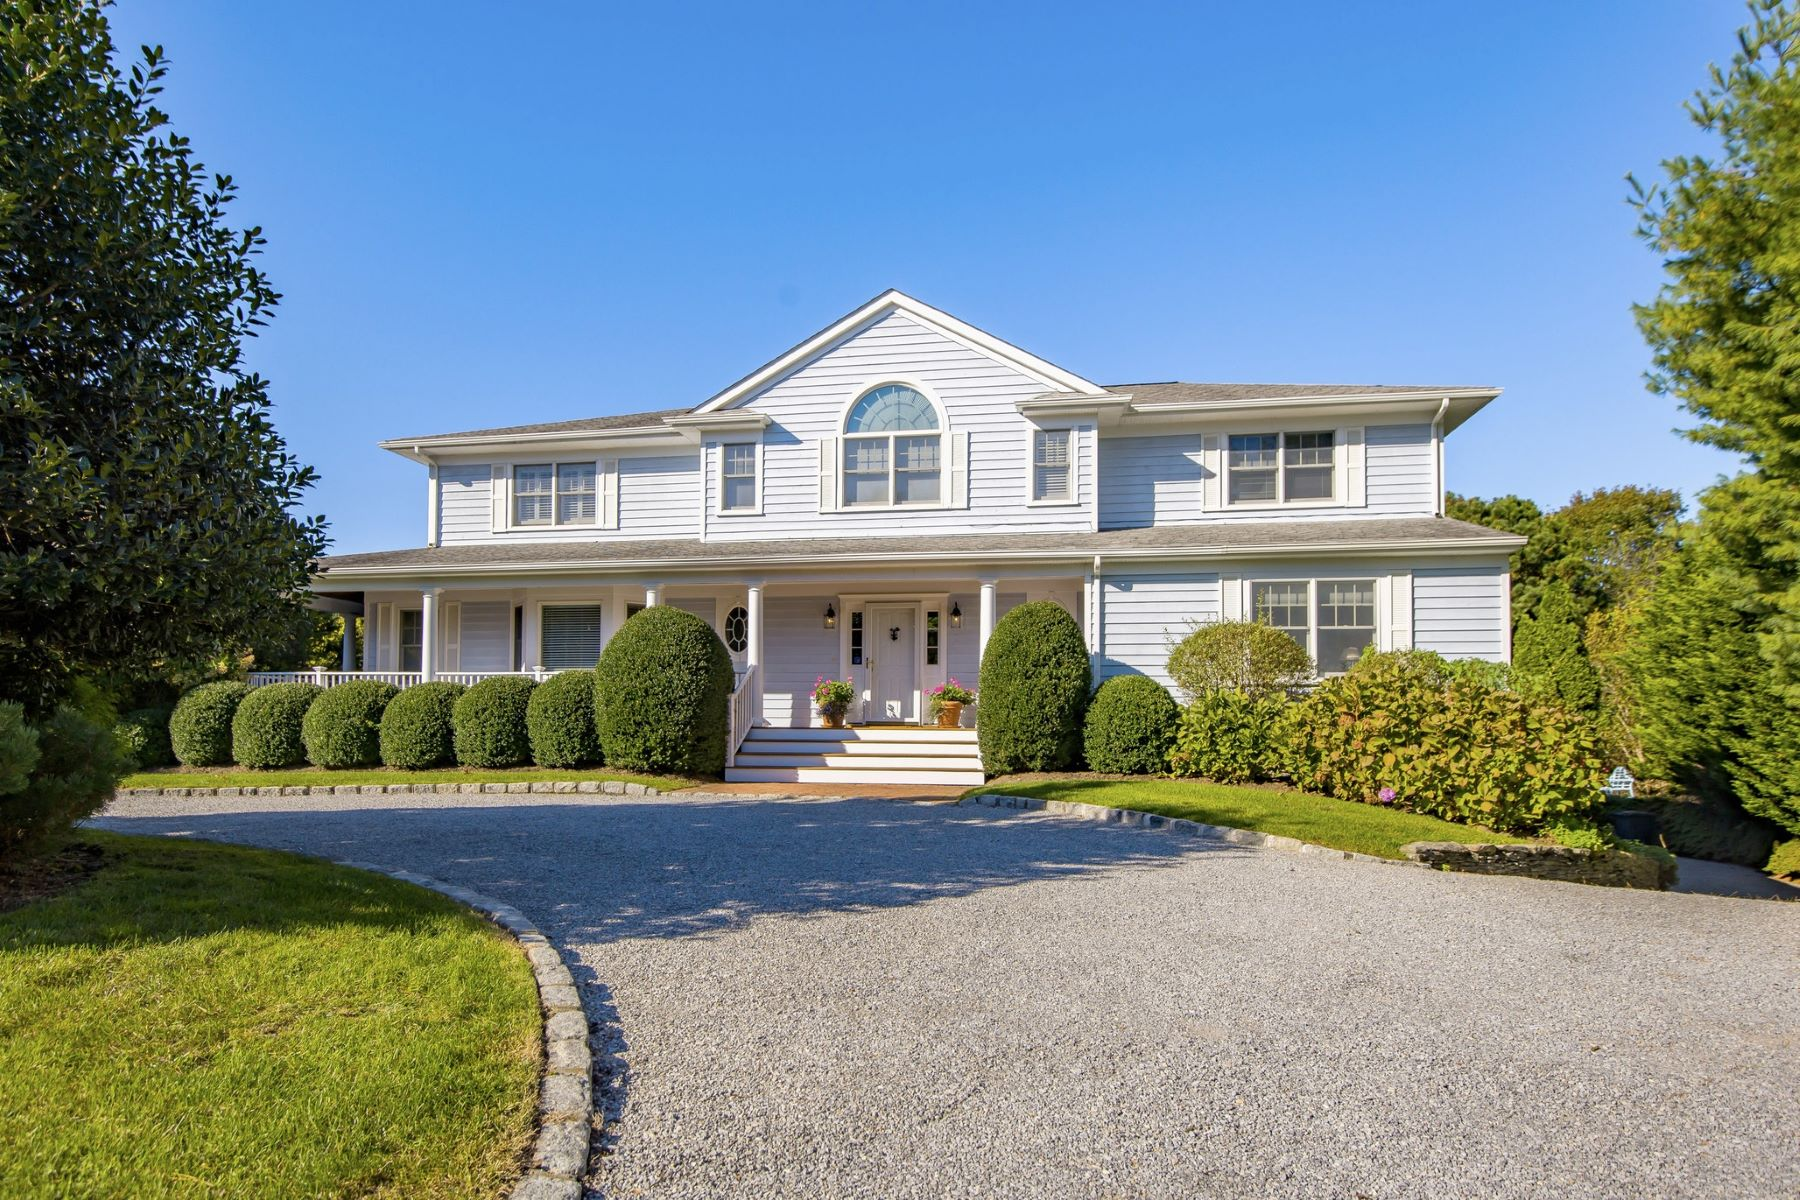 Single Family Homes for Sale at Westhampton 11 Pine Grove Ct Westhampton, New York 11977 United States